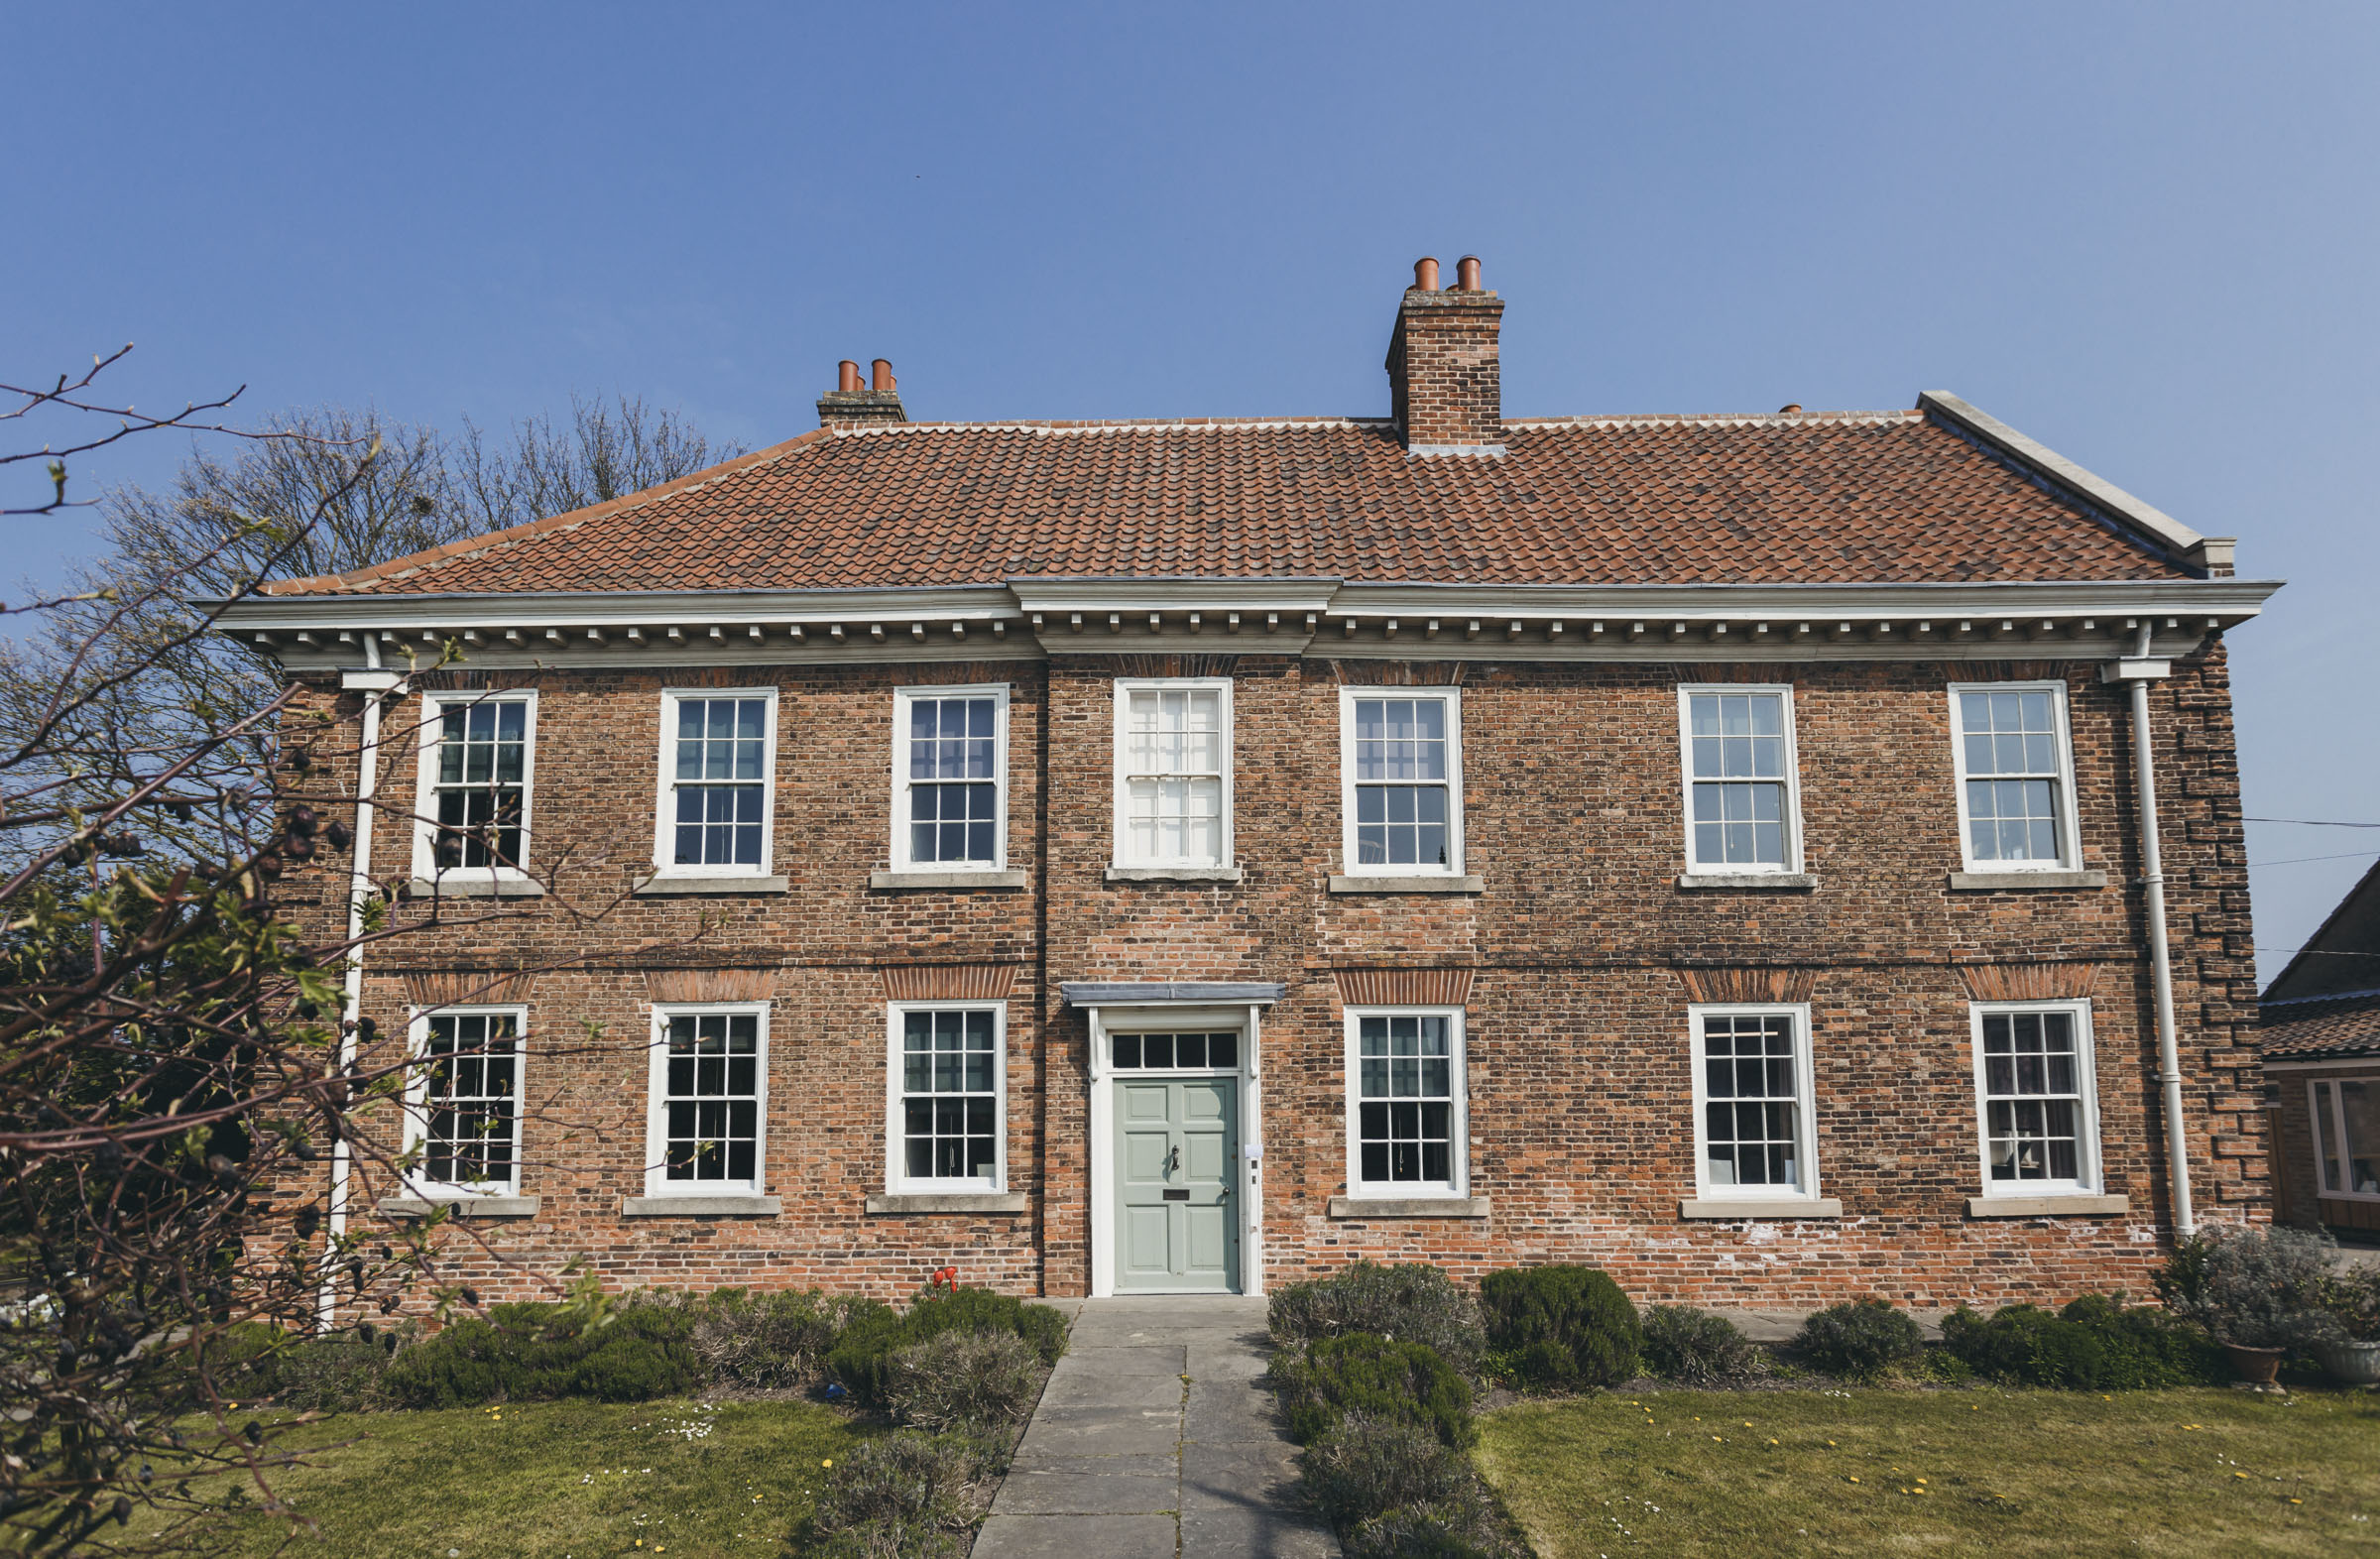 Epworth Old Rectory - Heritage Open Day